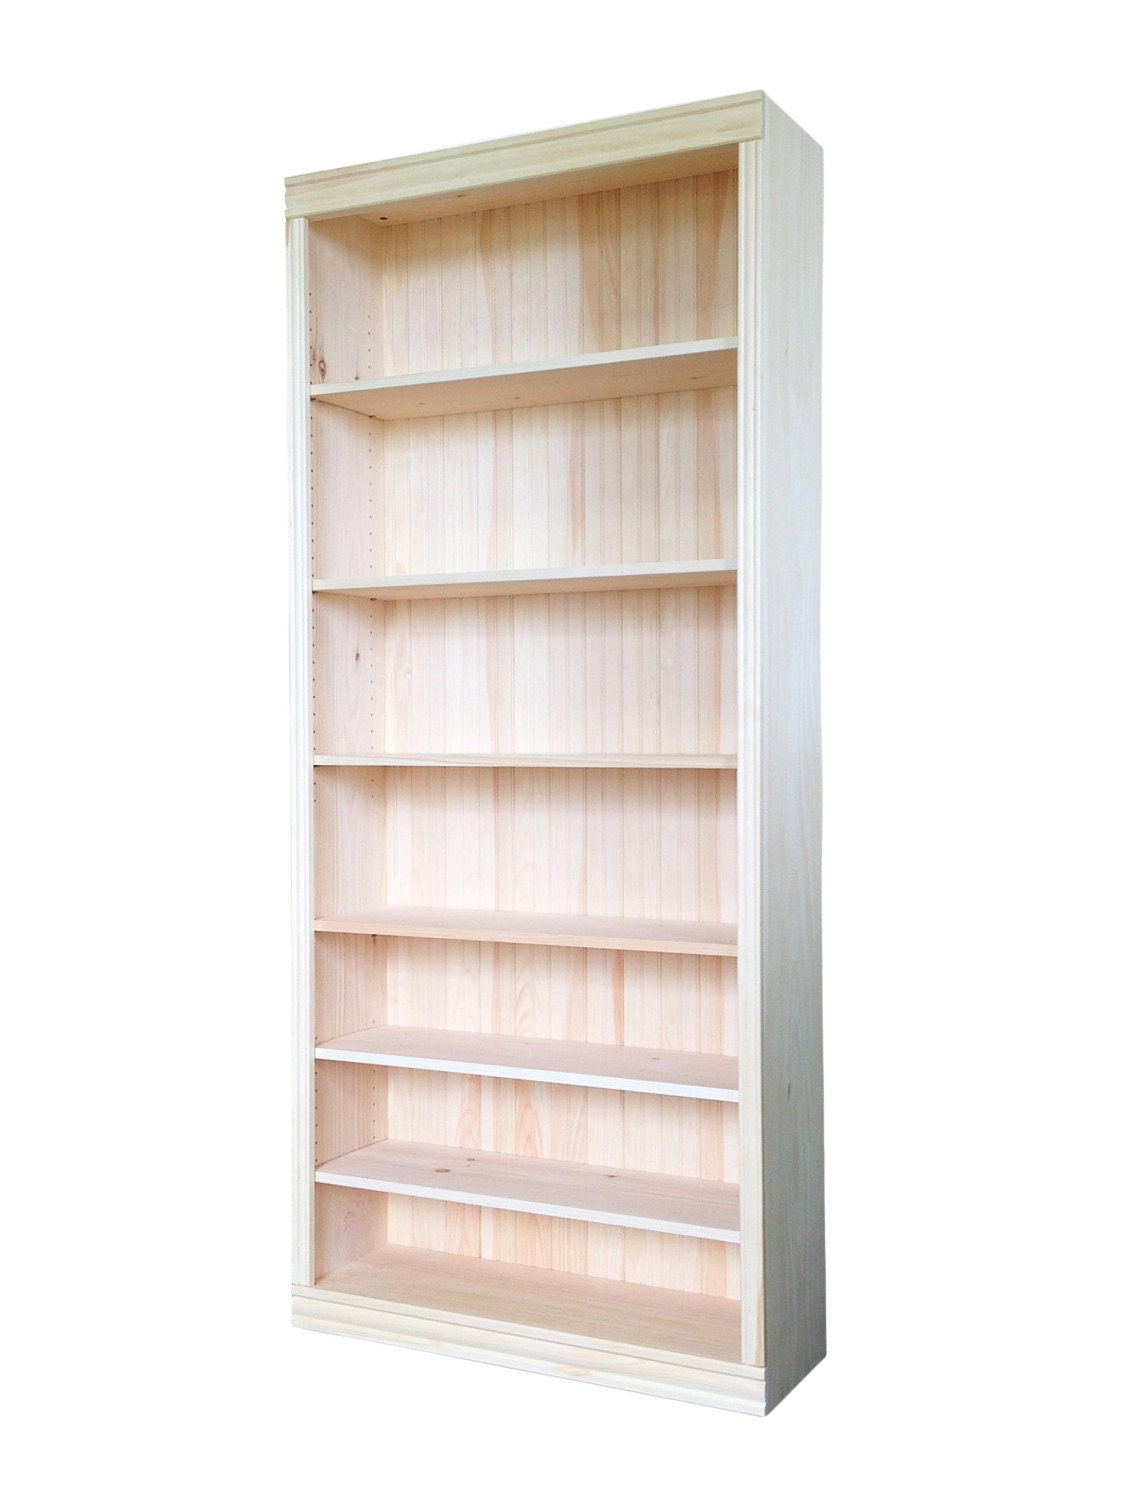 #85512D Solid Pine Bookcase 30W X 82H X 12D Unfinished with 1125x1500 px of Most Effective Unfinished Wood Bookcases 15001125 wallpaper @ avoidforclosure.info